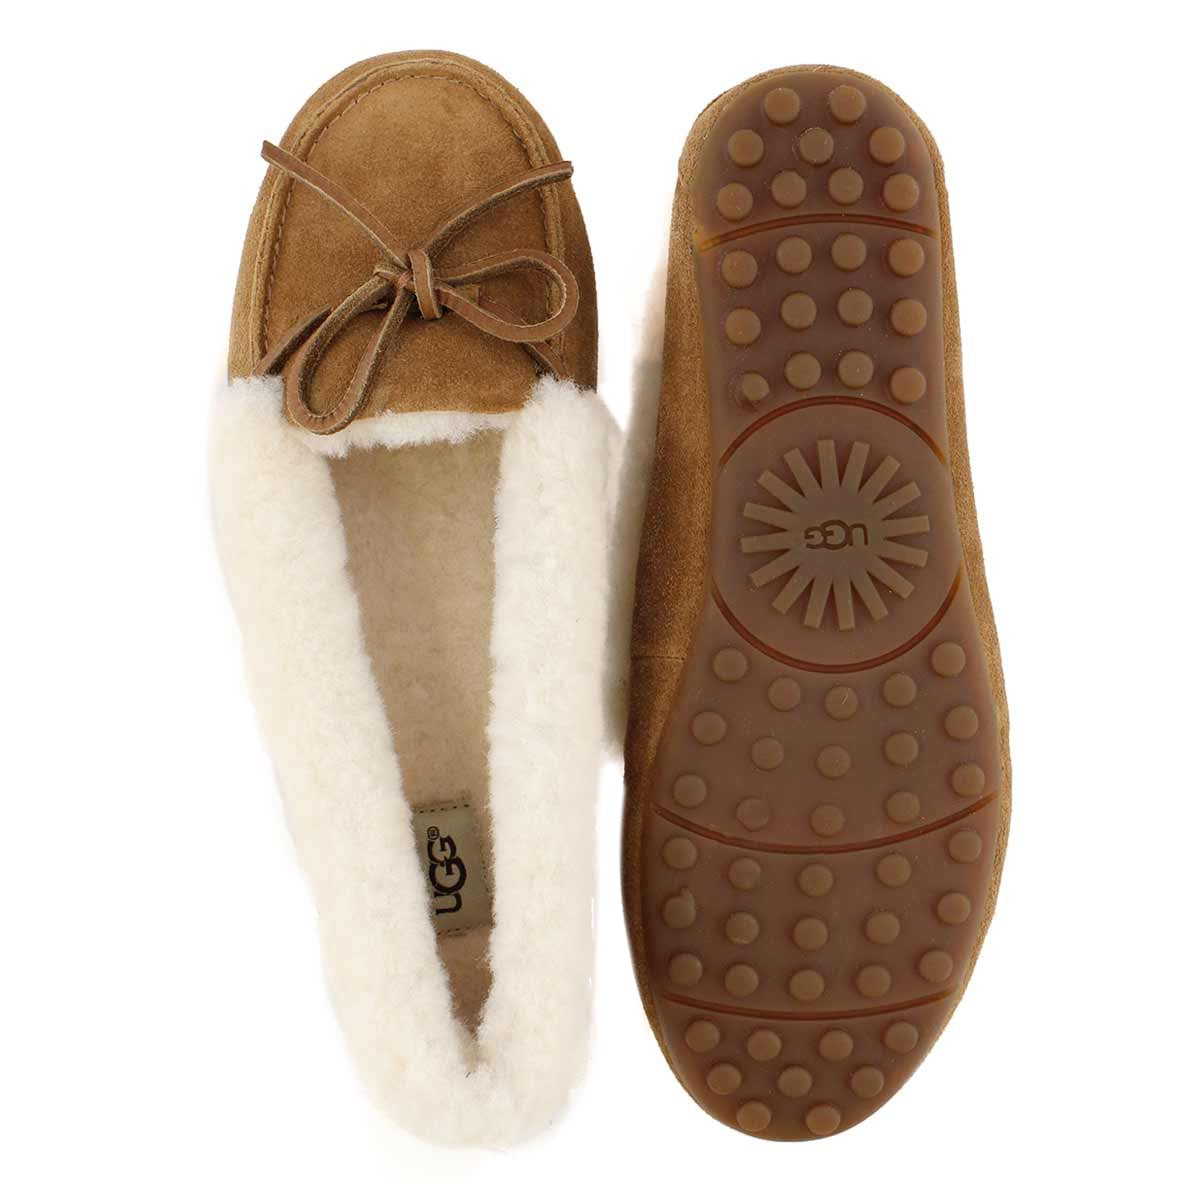 Lds Solana ches shpskn collar moccasin